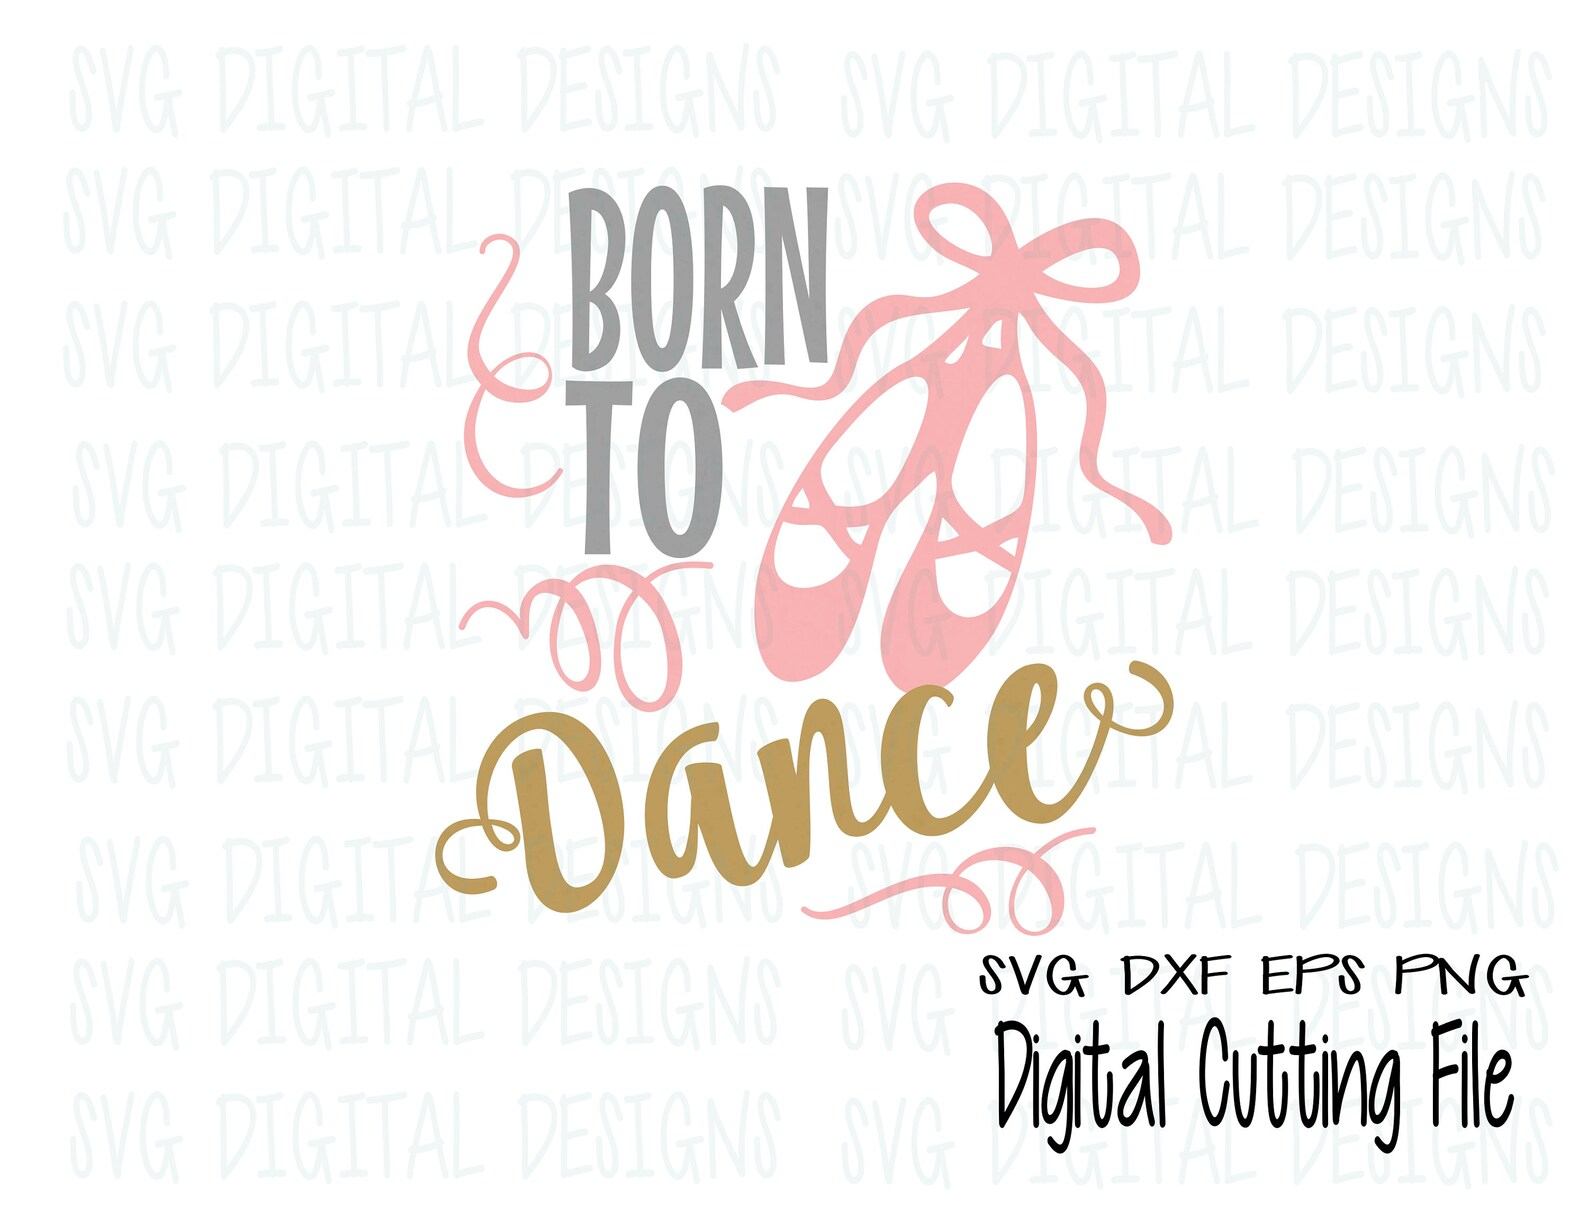 born to dance svg cut file design, ballerina dance shoe saying for silhouette, cricut & more ballet dance cutting files, svg dxf